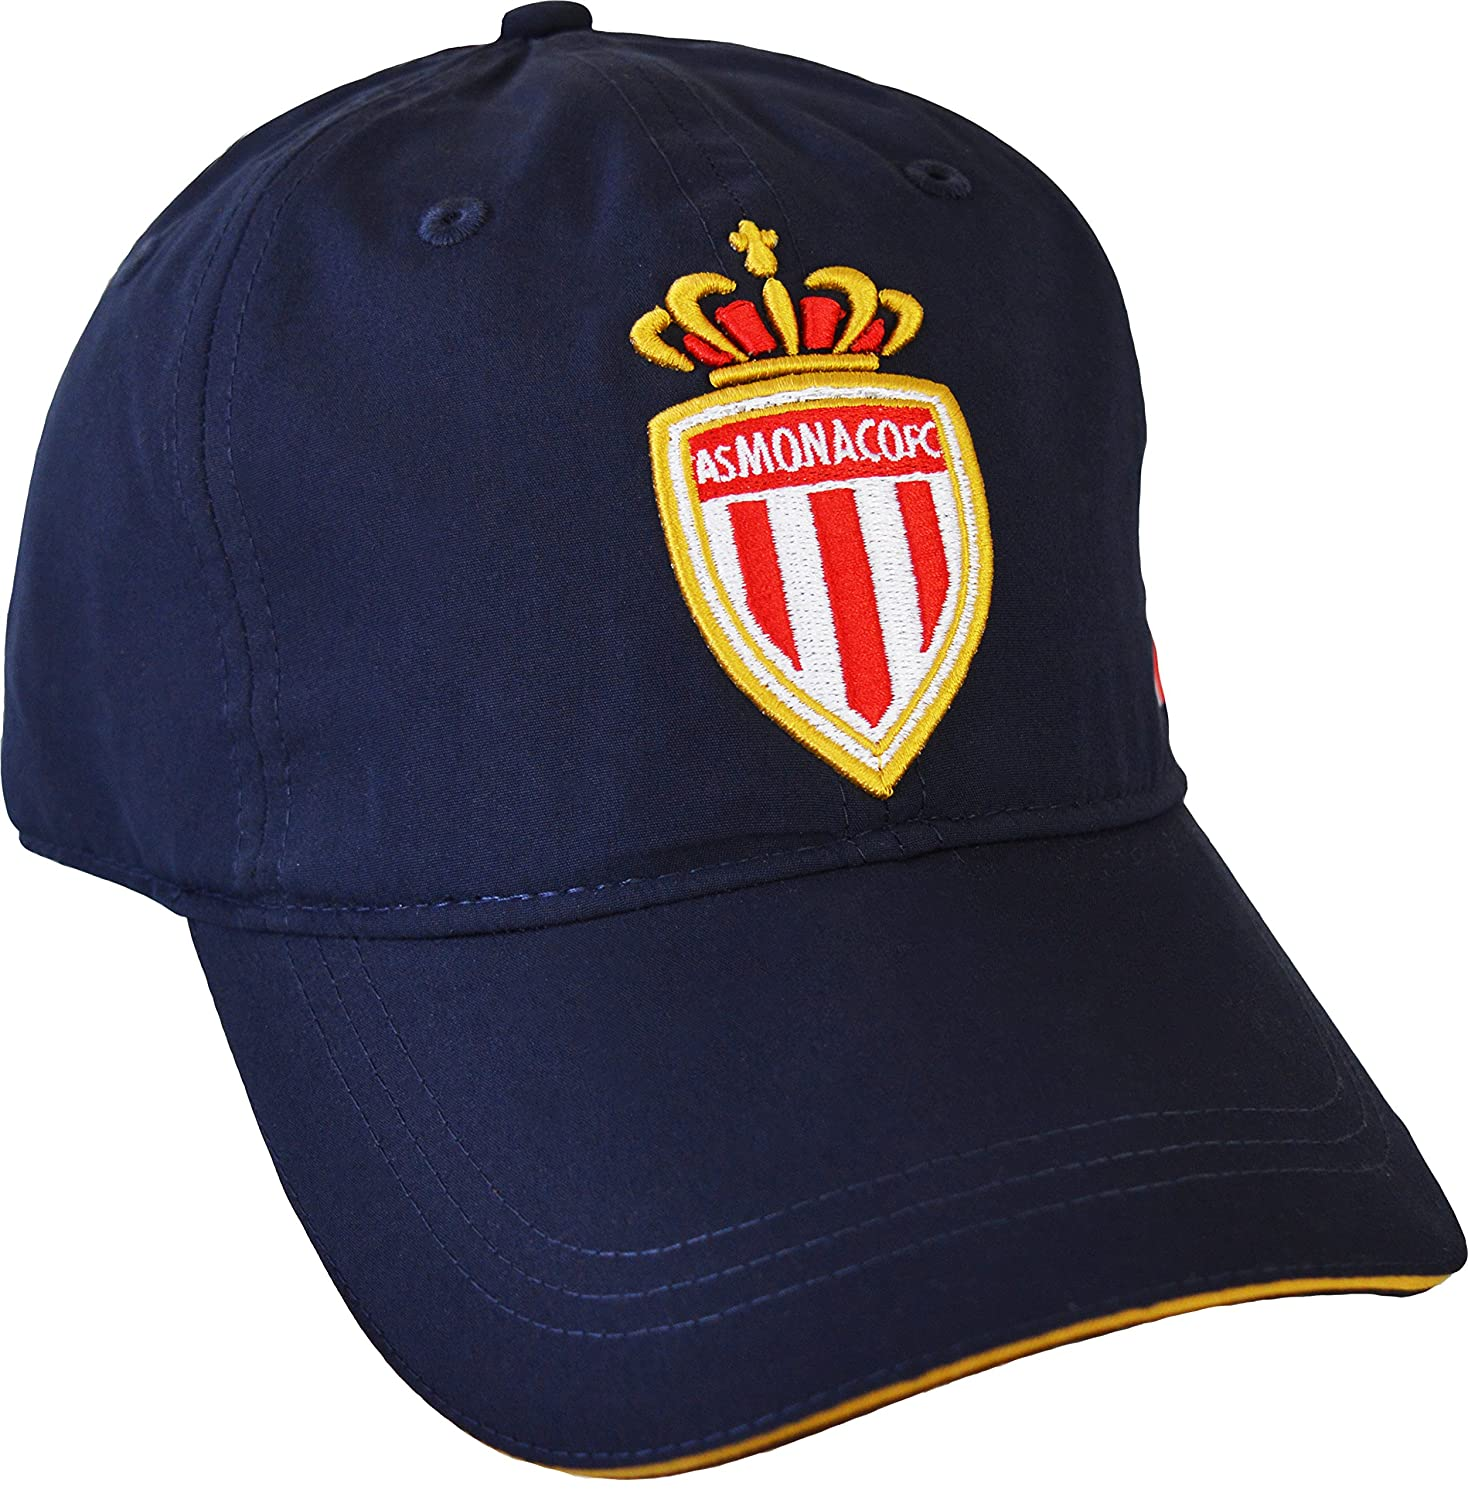 ad26f435cce AS MONACO Casquette Collection Officielle - Football - taille réglable